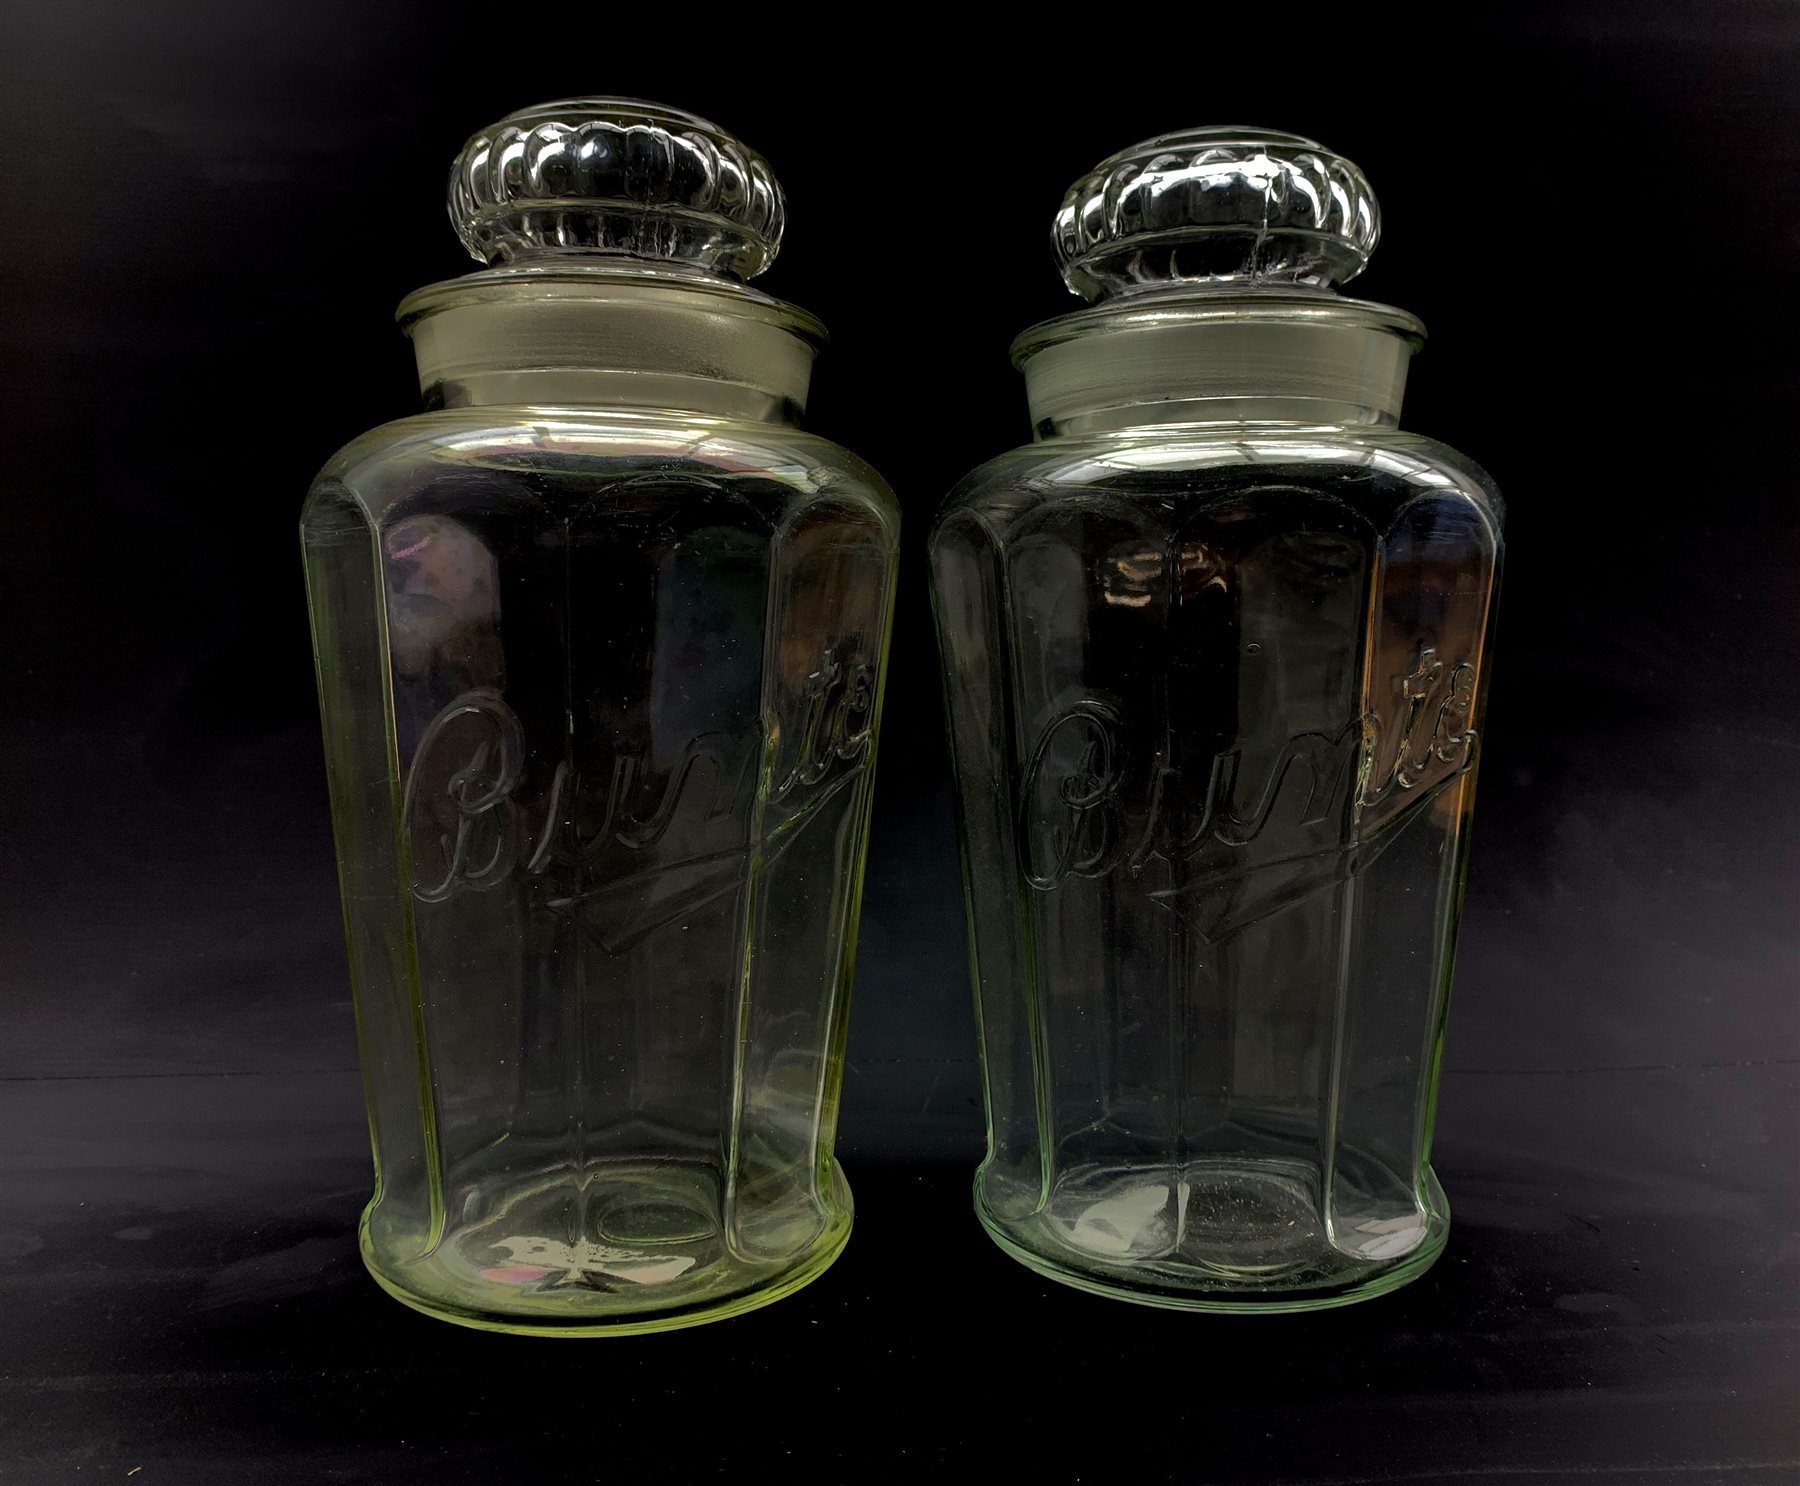 Pair of 1930's American 'Bunte' advertising candy jars and covers, H32cm